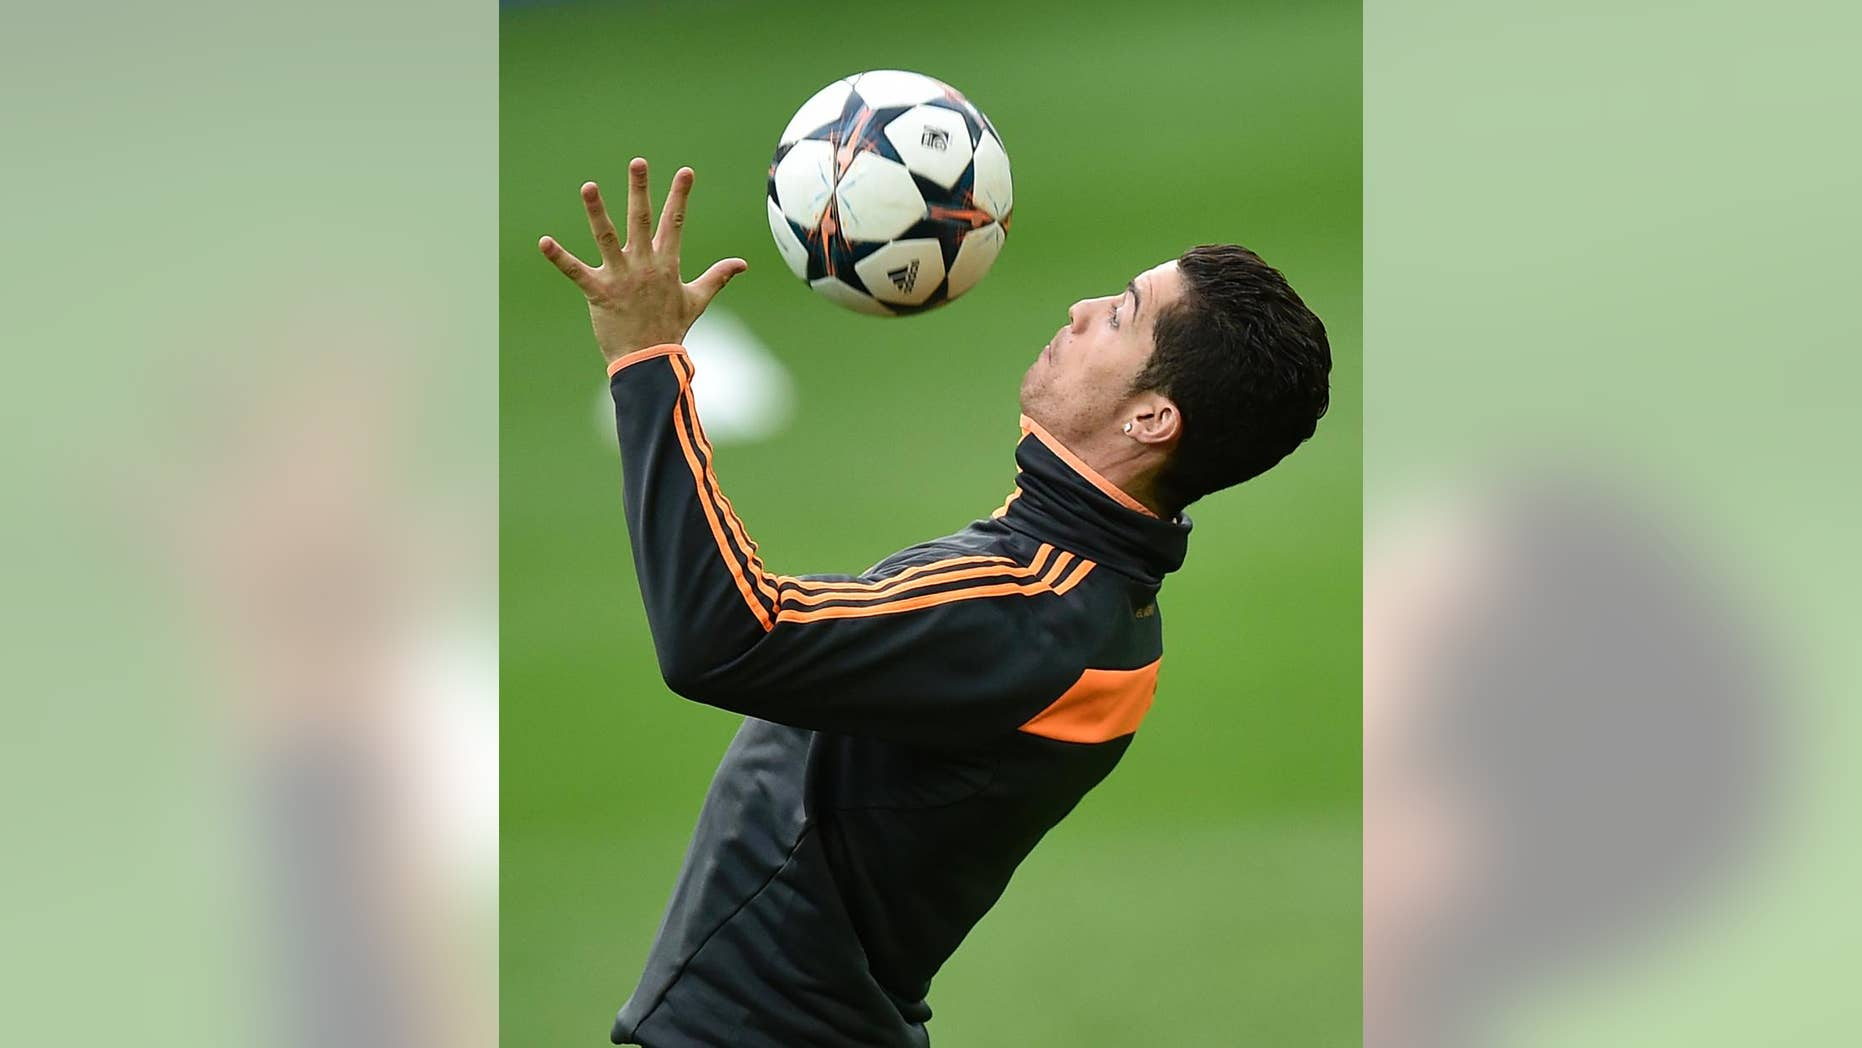 Real's Cristiano Ronaldo controls the ball during a training session prior the UEFA Champions League second leg soccer match between Borussia Dortmund and Real Madrid in Dortmund, Monday, April 7, 2014. Ronaldo had to break off the training. (AP Photo/Martin Meissner)